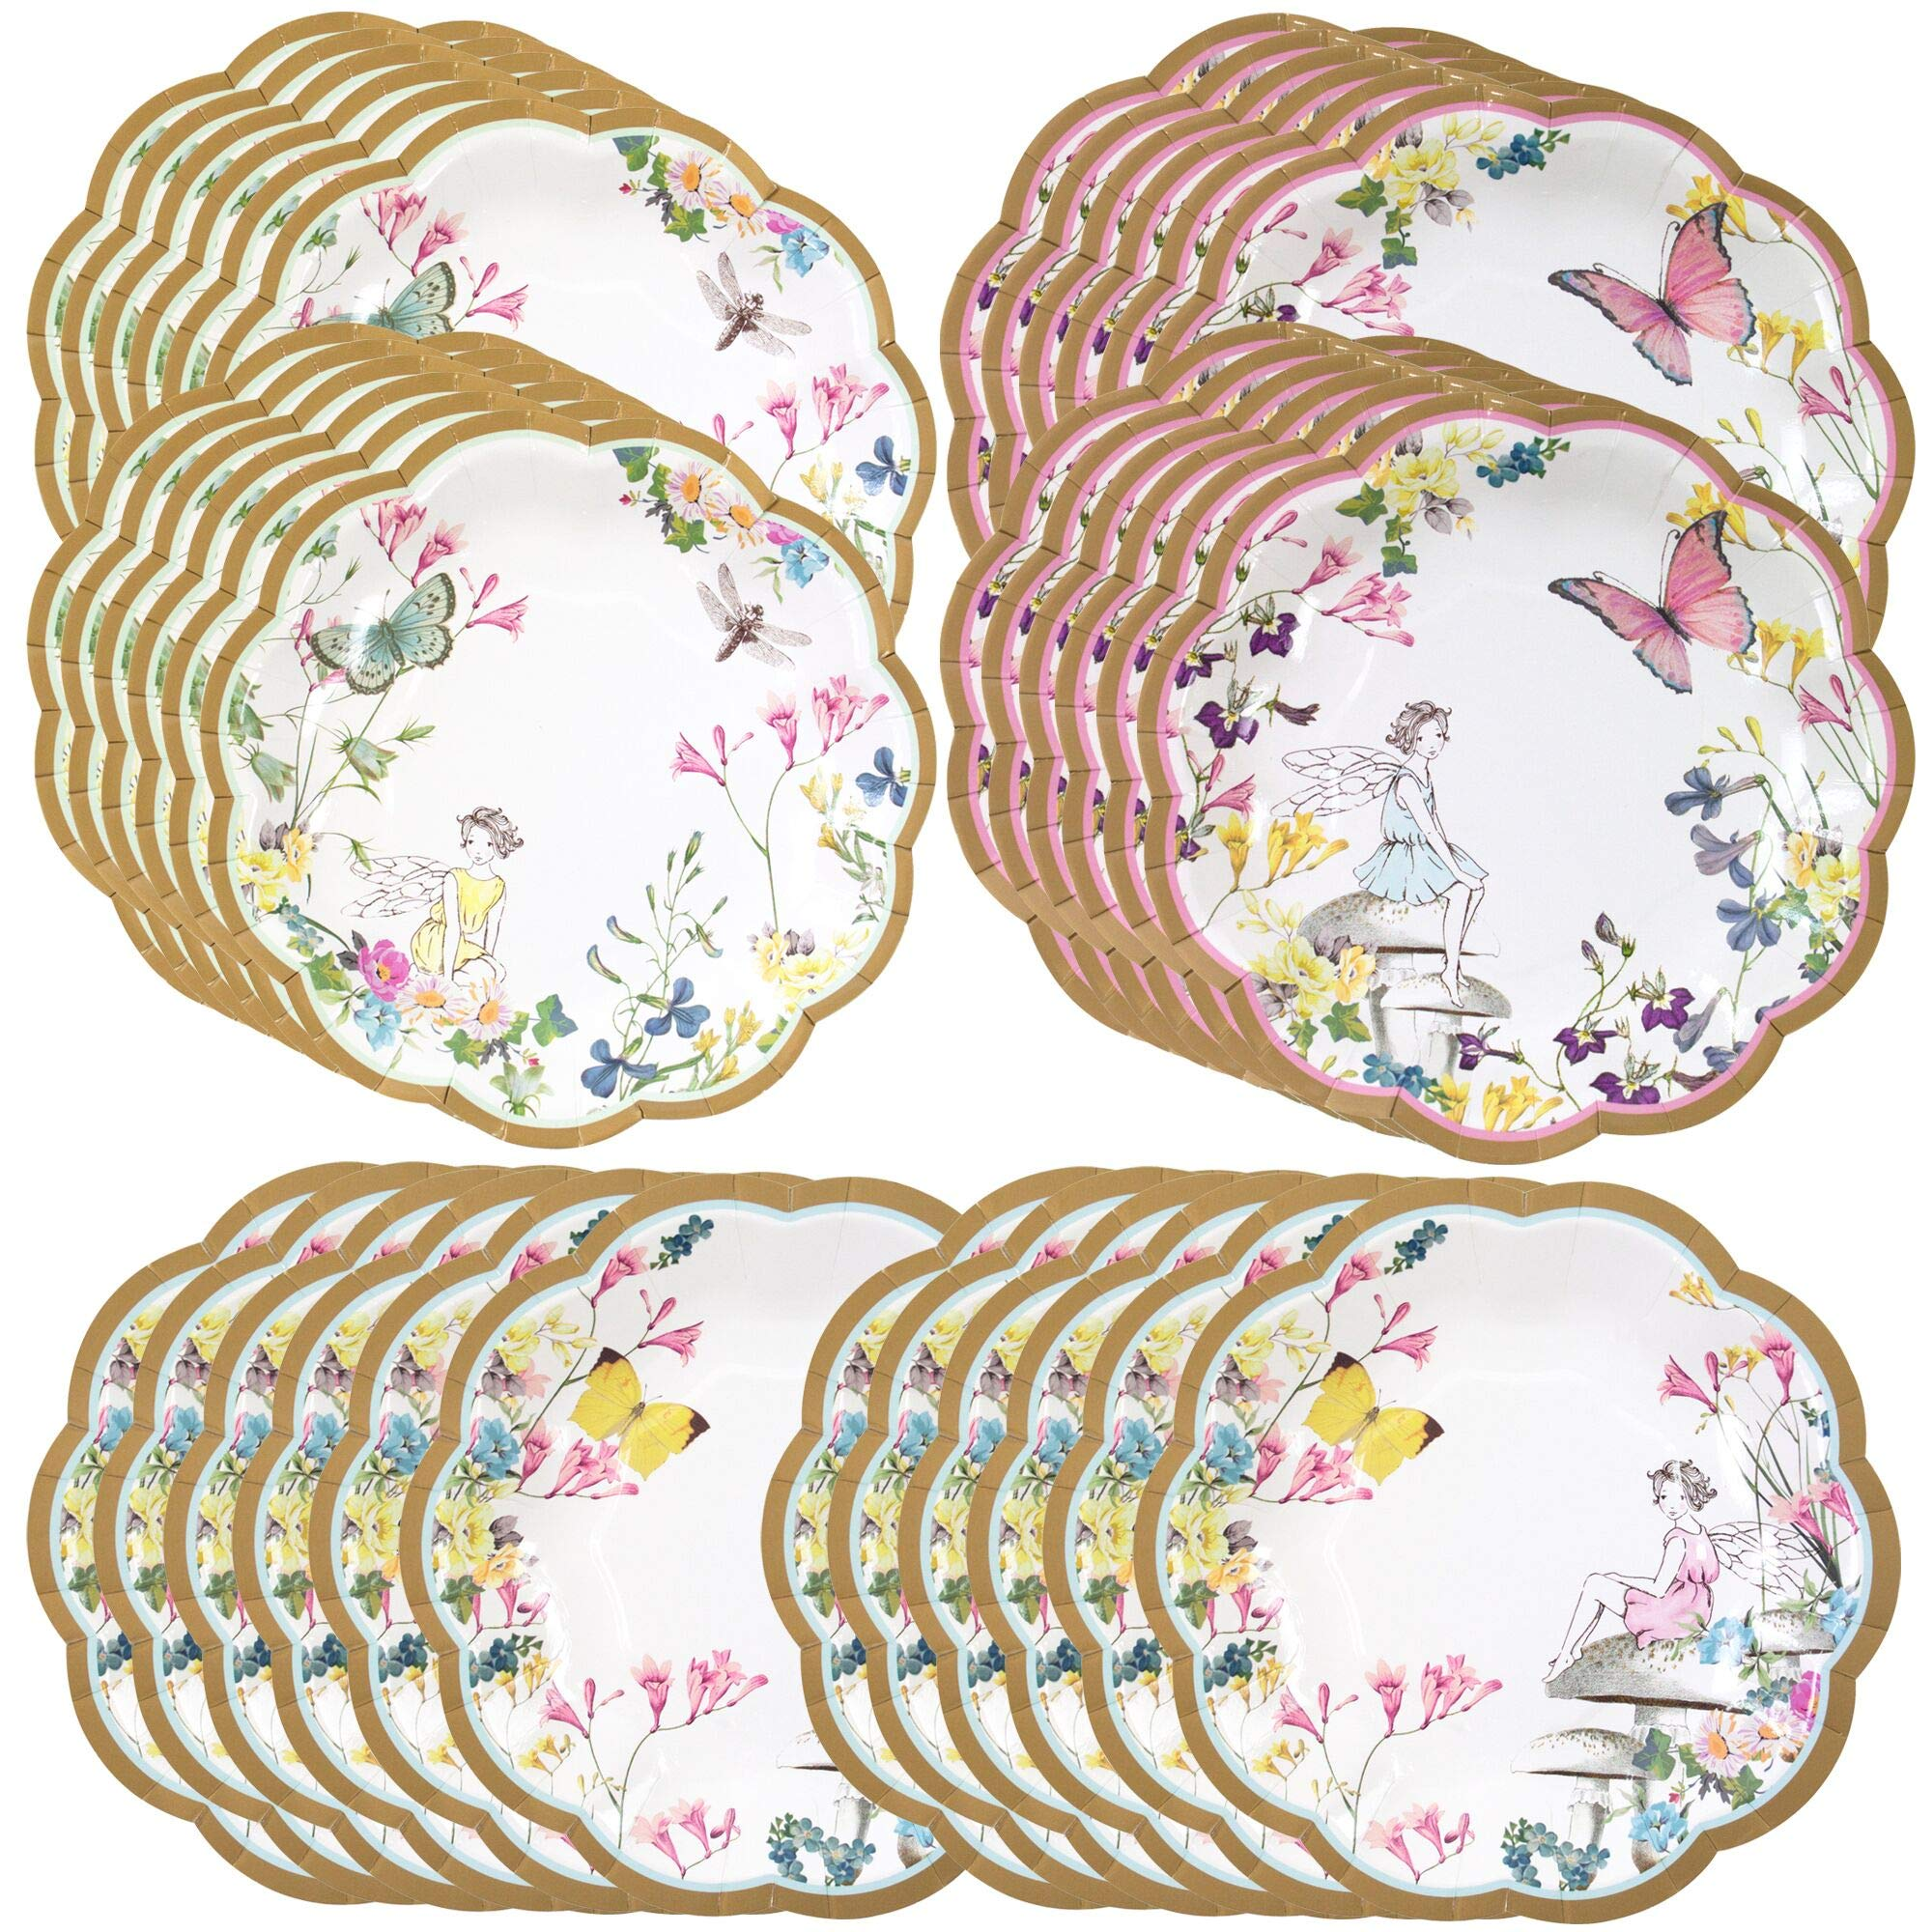 Talking Tables Truly Fairy Paper Plate with Fairy Design for a Tea Party or Birthday, Multicolor (24 Pack) by Talking Tables